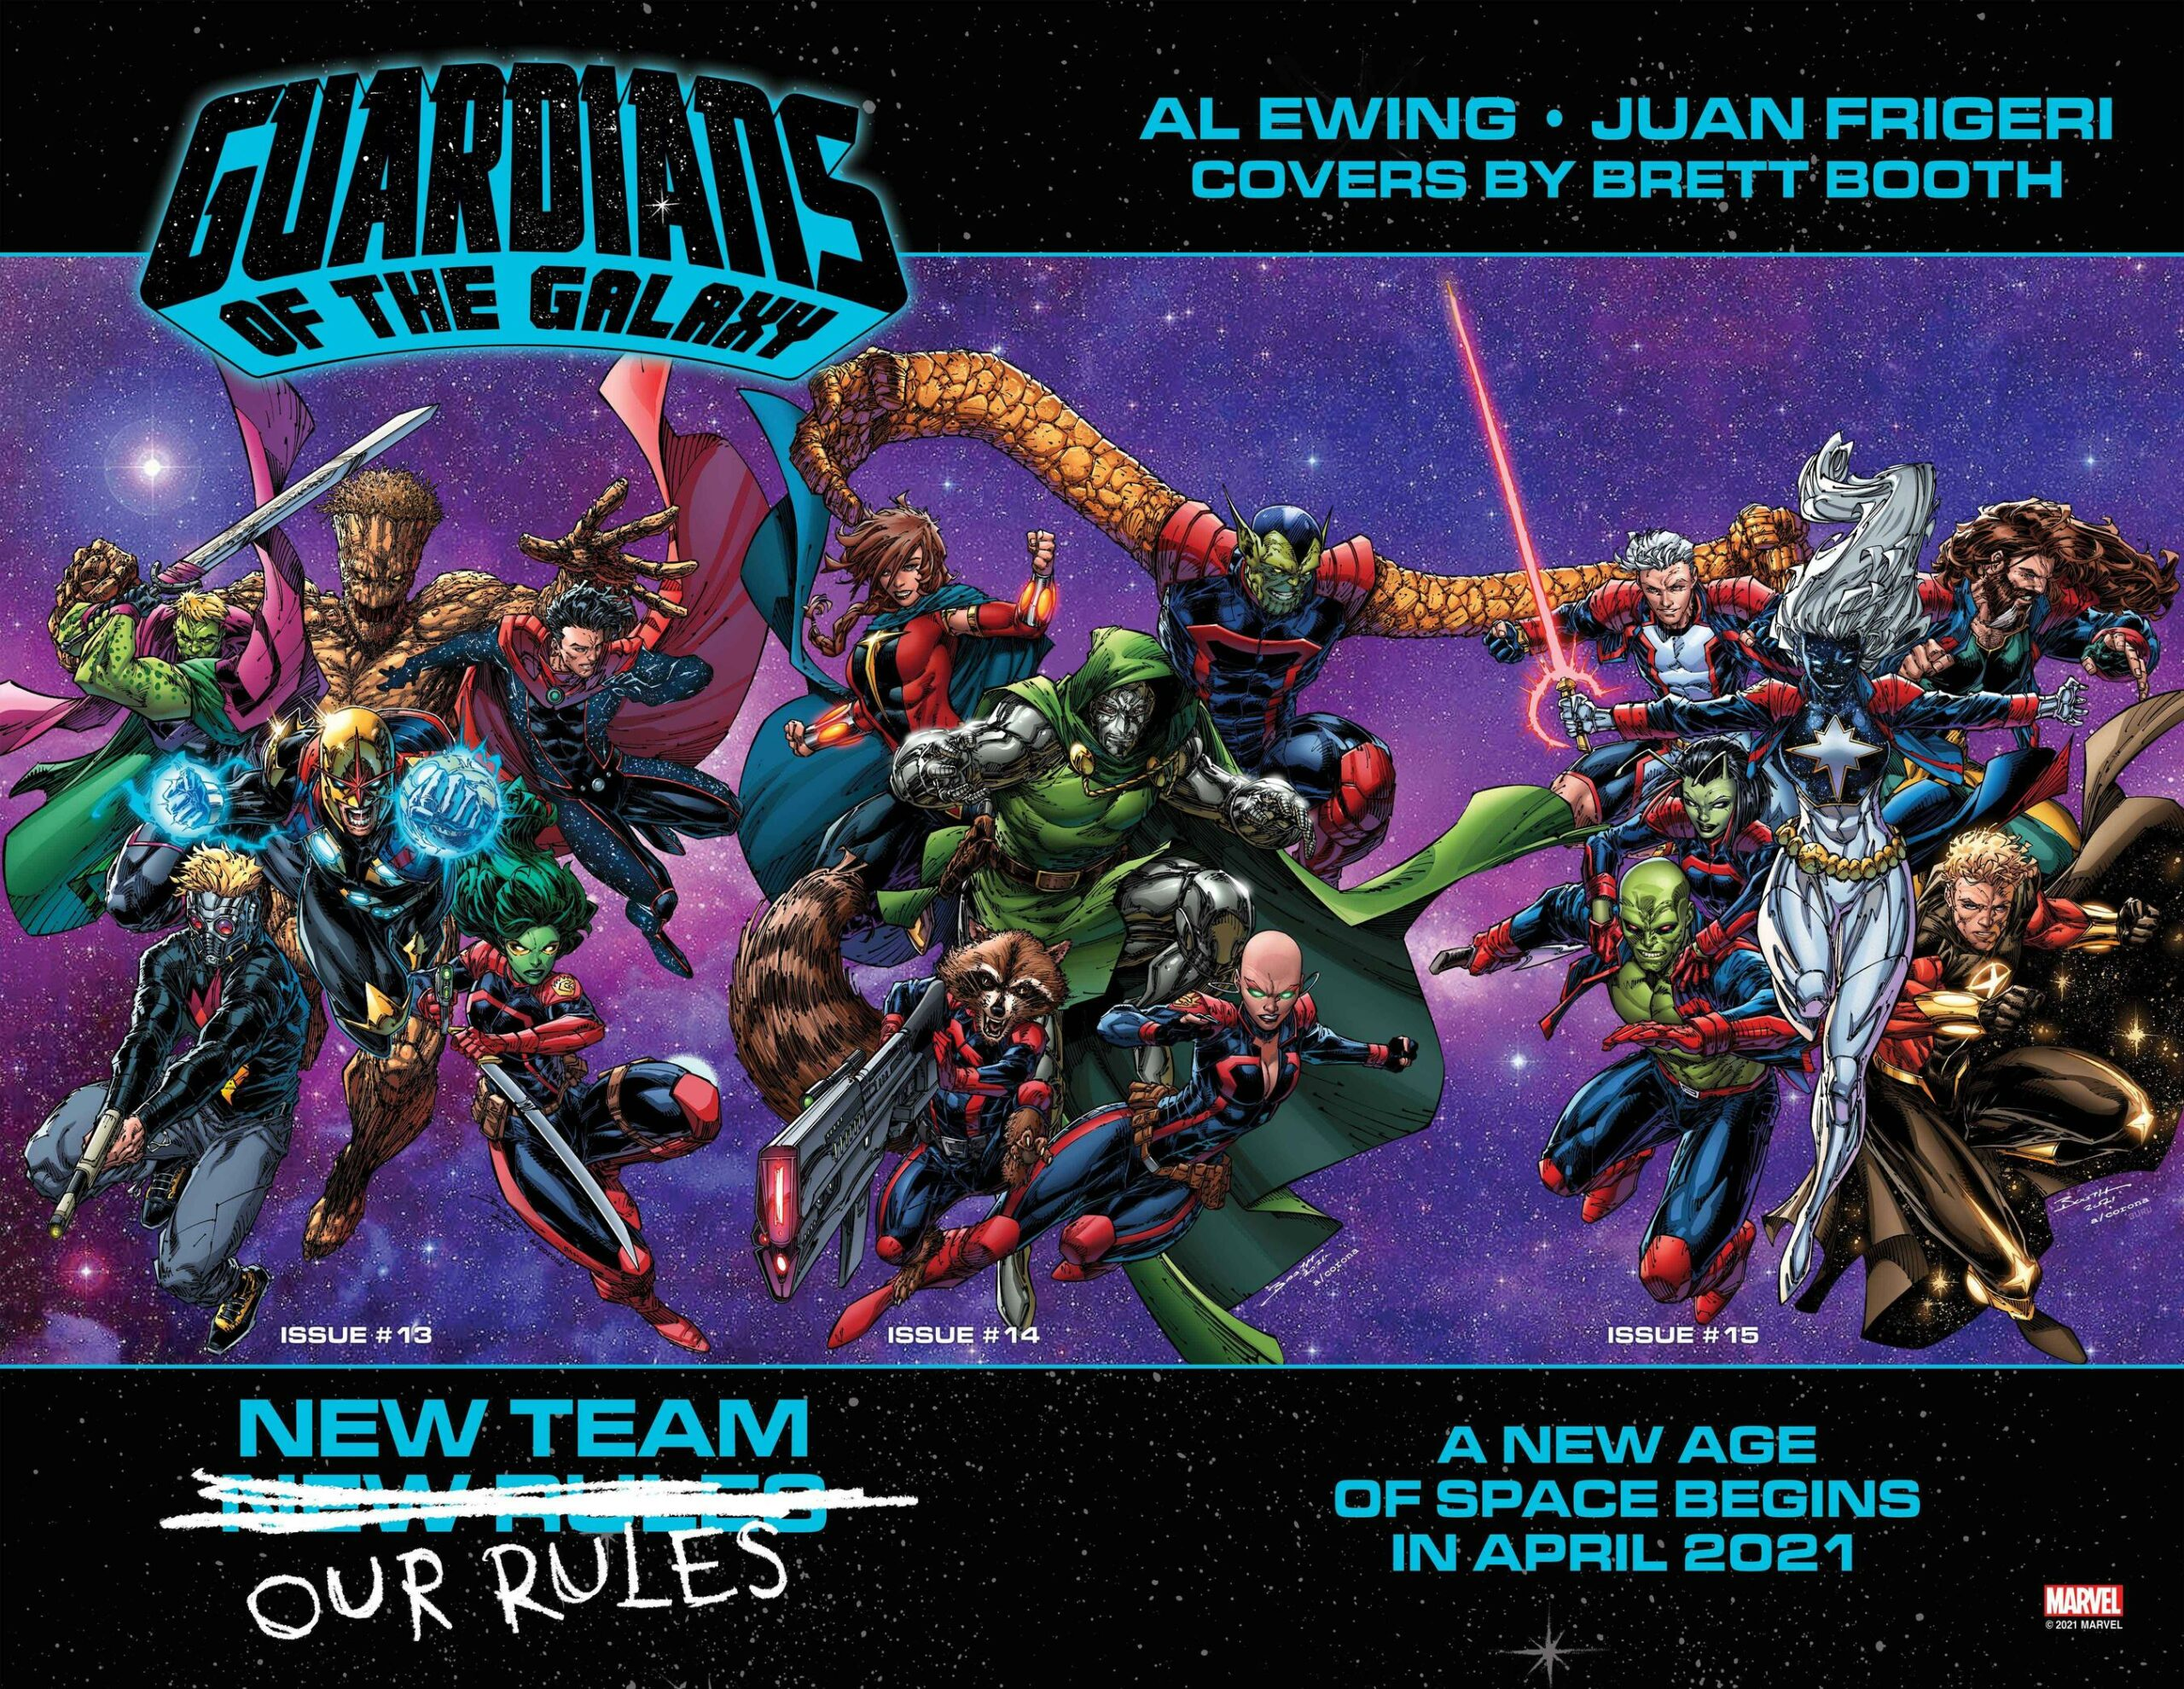 2021 Guardians of the Galaxy lineup by Al Ewing